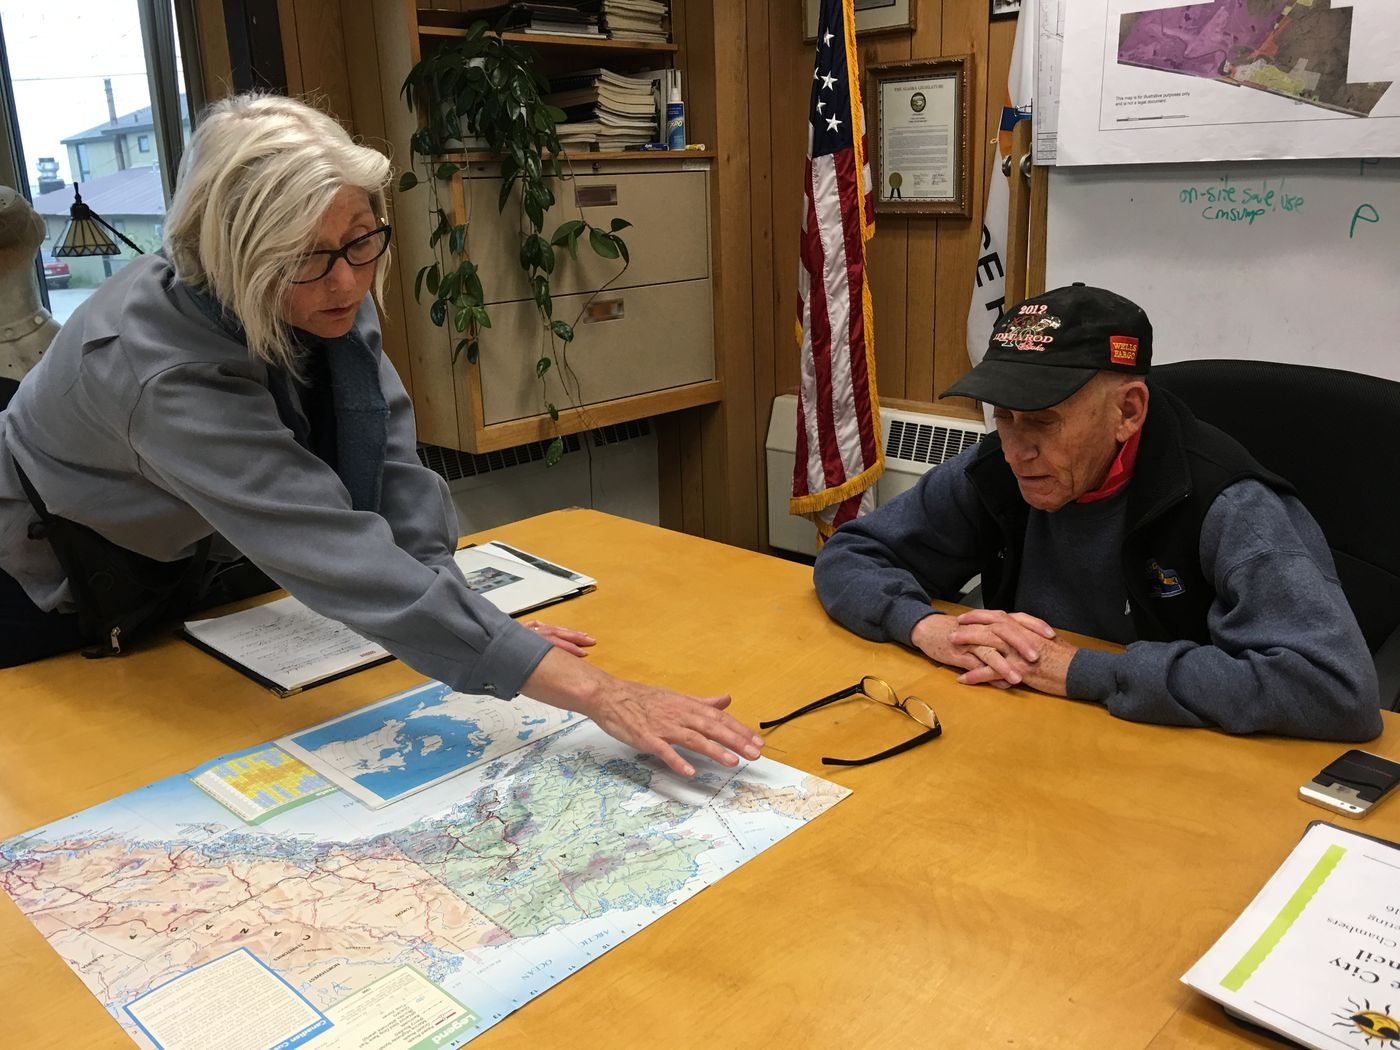 Tandy Wallack of Circumpolar Expeditions discusses the Diomede Island Family Reunion with Nome Mayor Richard Beneville. Both spoke about the need for closer relations across the Bering Strait. (Kirsten Swann / Alaska Dispatch News)